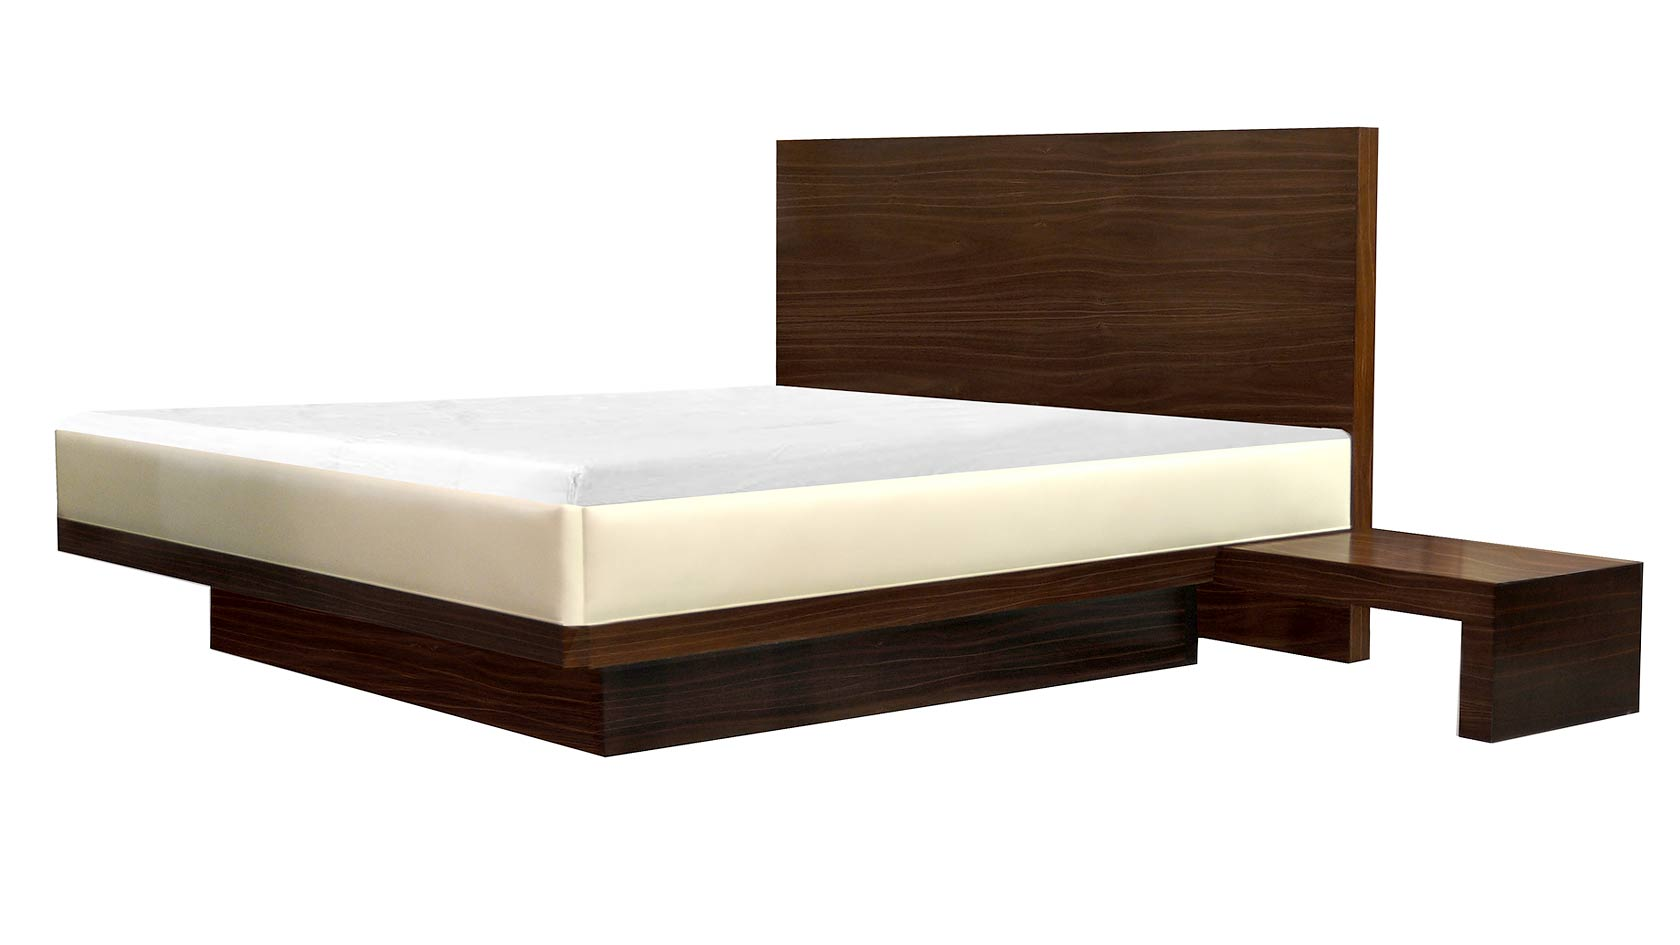 Mondrian Bed & Nightstands